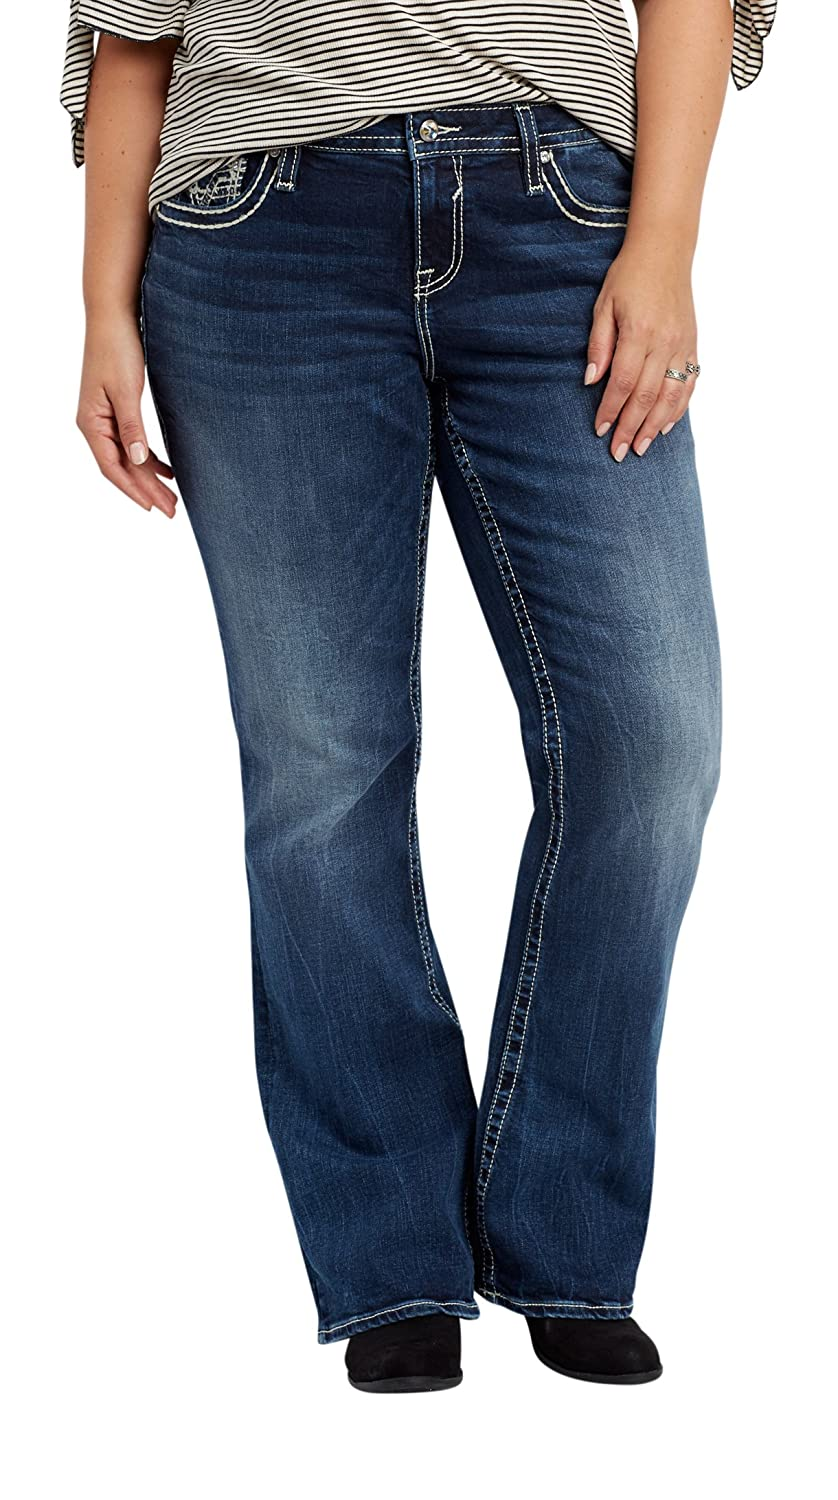 effcdc89f3b maurices Women s Vigoss Plus Size Dark Wash Bootcut Jeans with Back Flap  Pockets